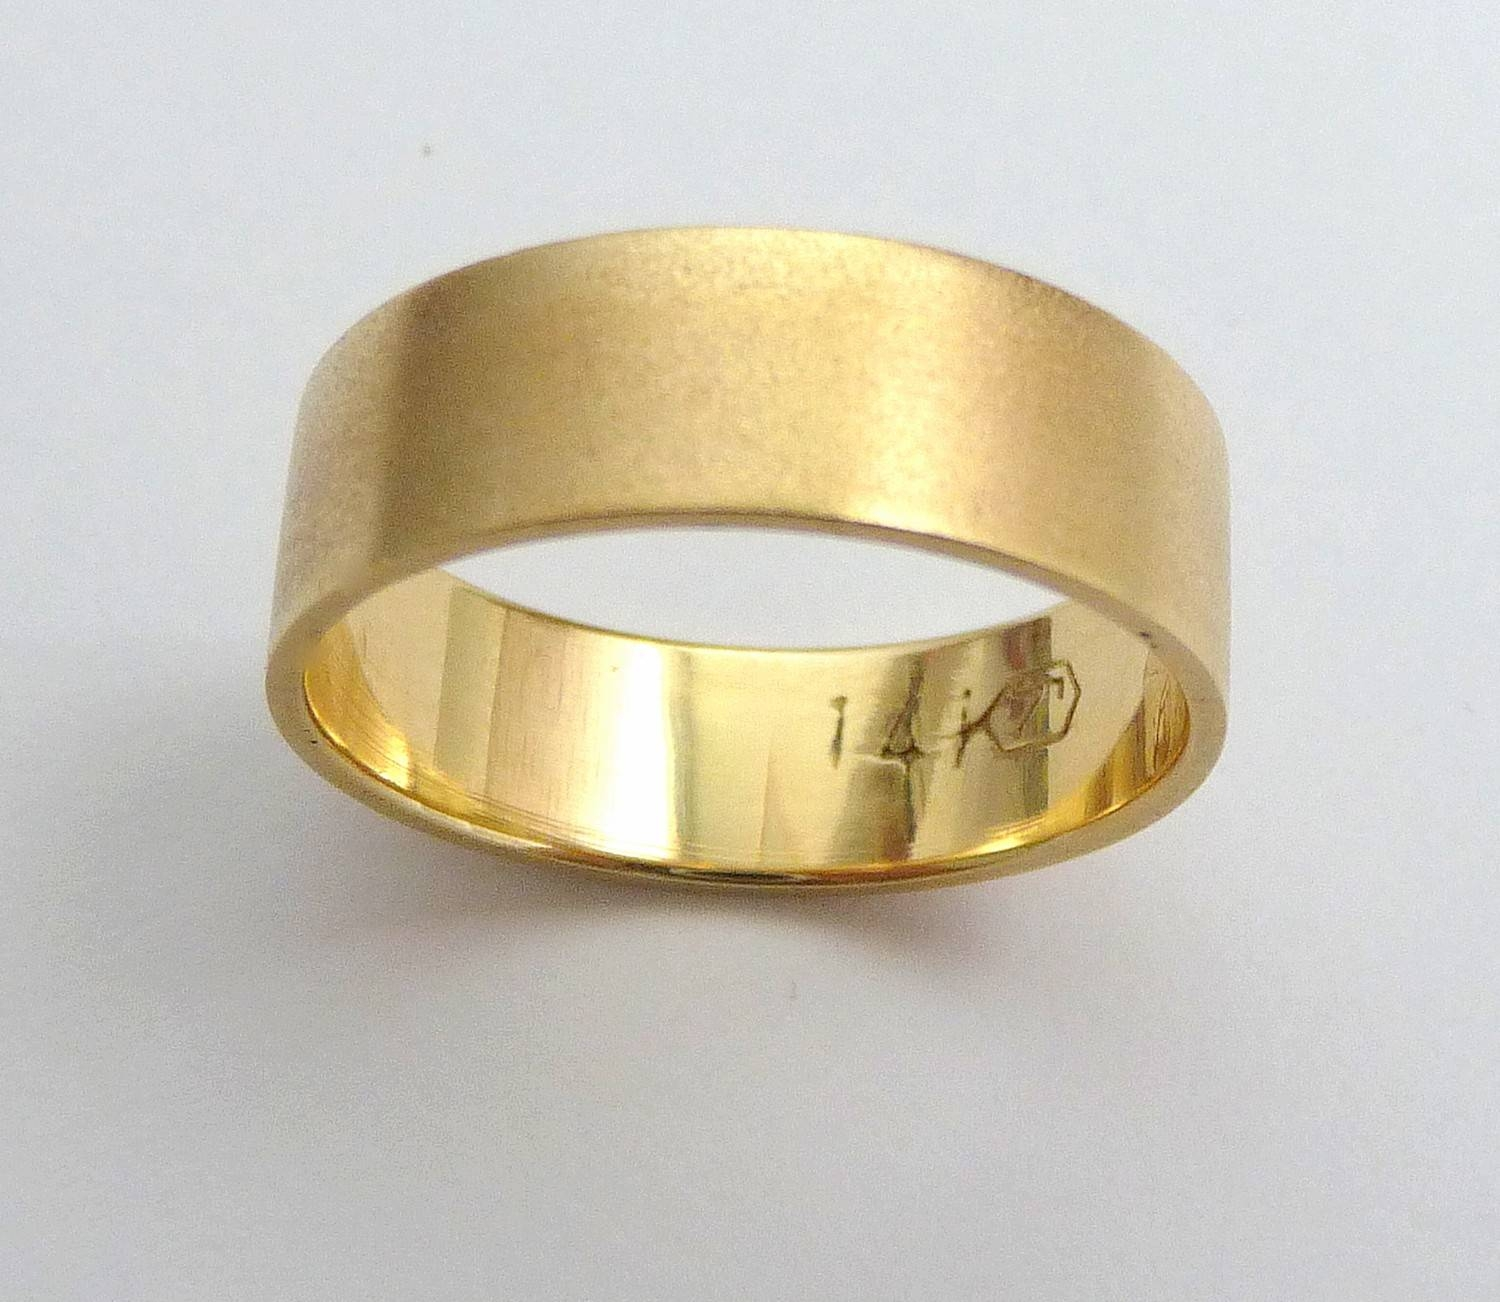 Gold Wedding Band Men Wedding Ring Flat With Sandblast Finish With Regard To Yellow Gold Wedding Bands For Men (View 10 of 15)